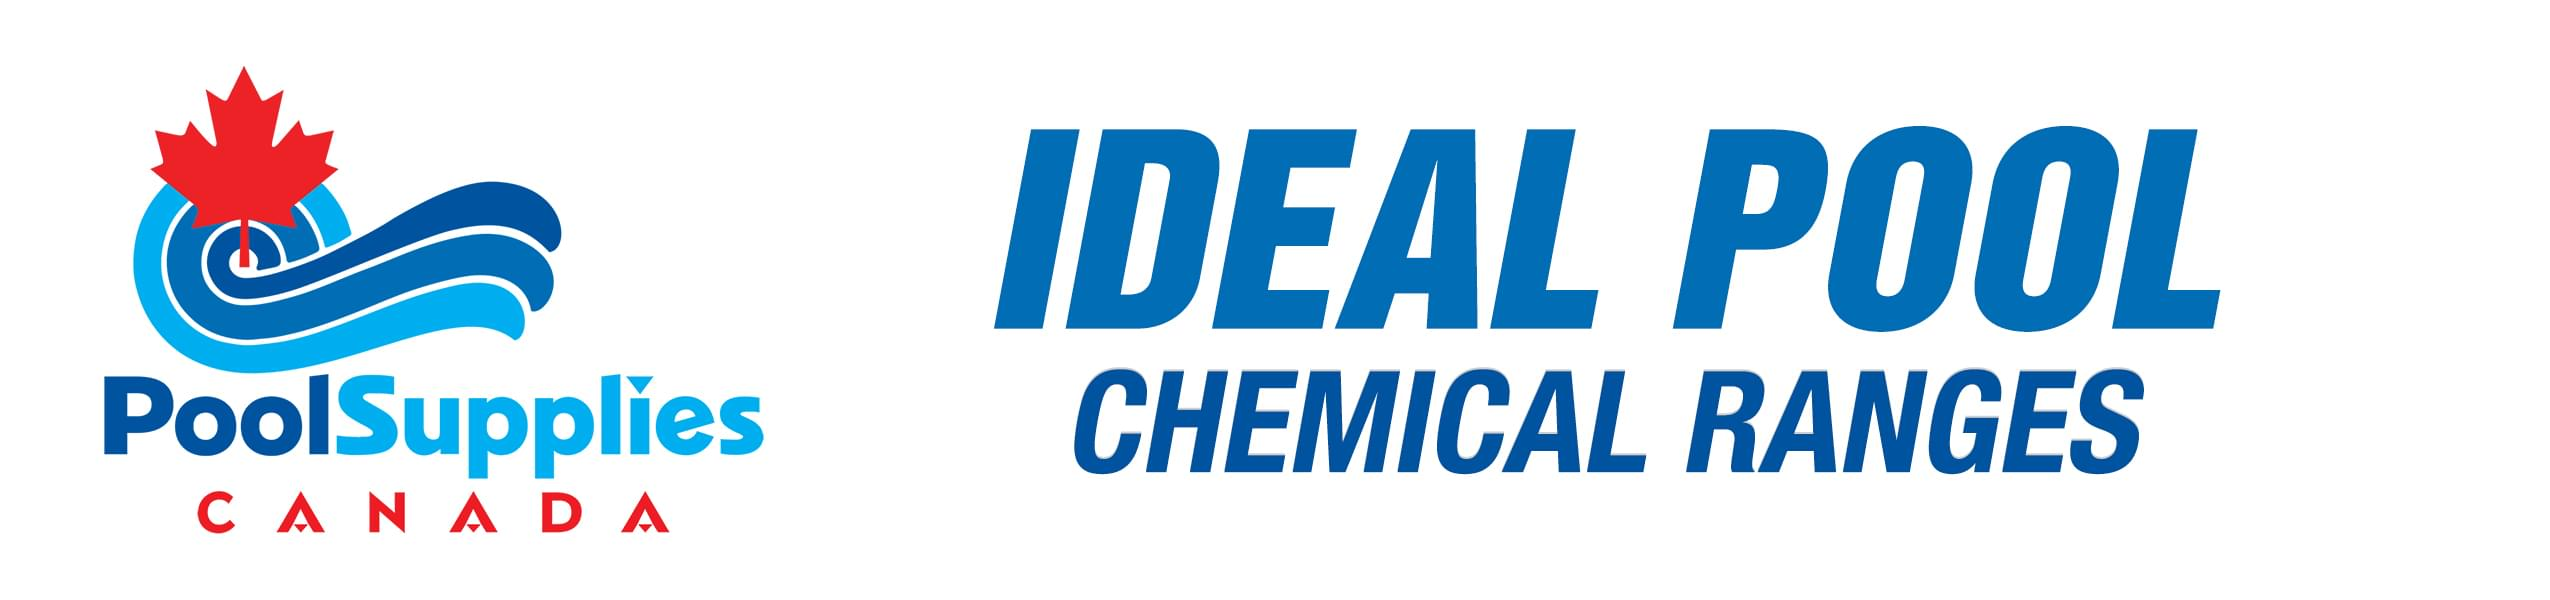 Ideal Pool Water Chemical Ranges